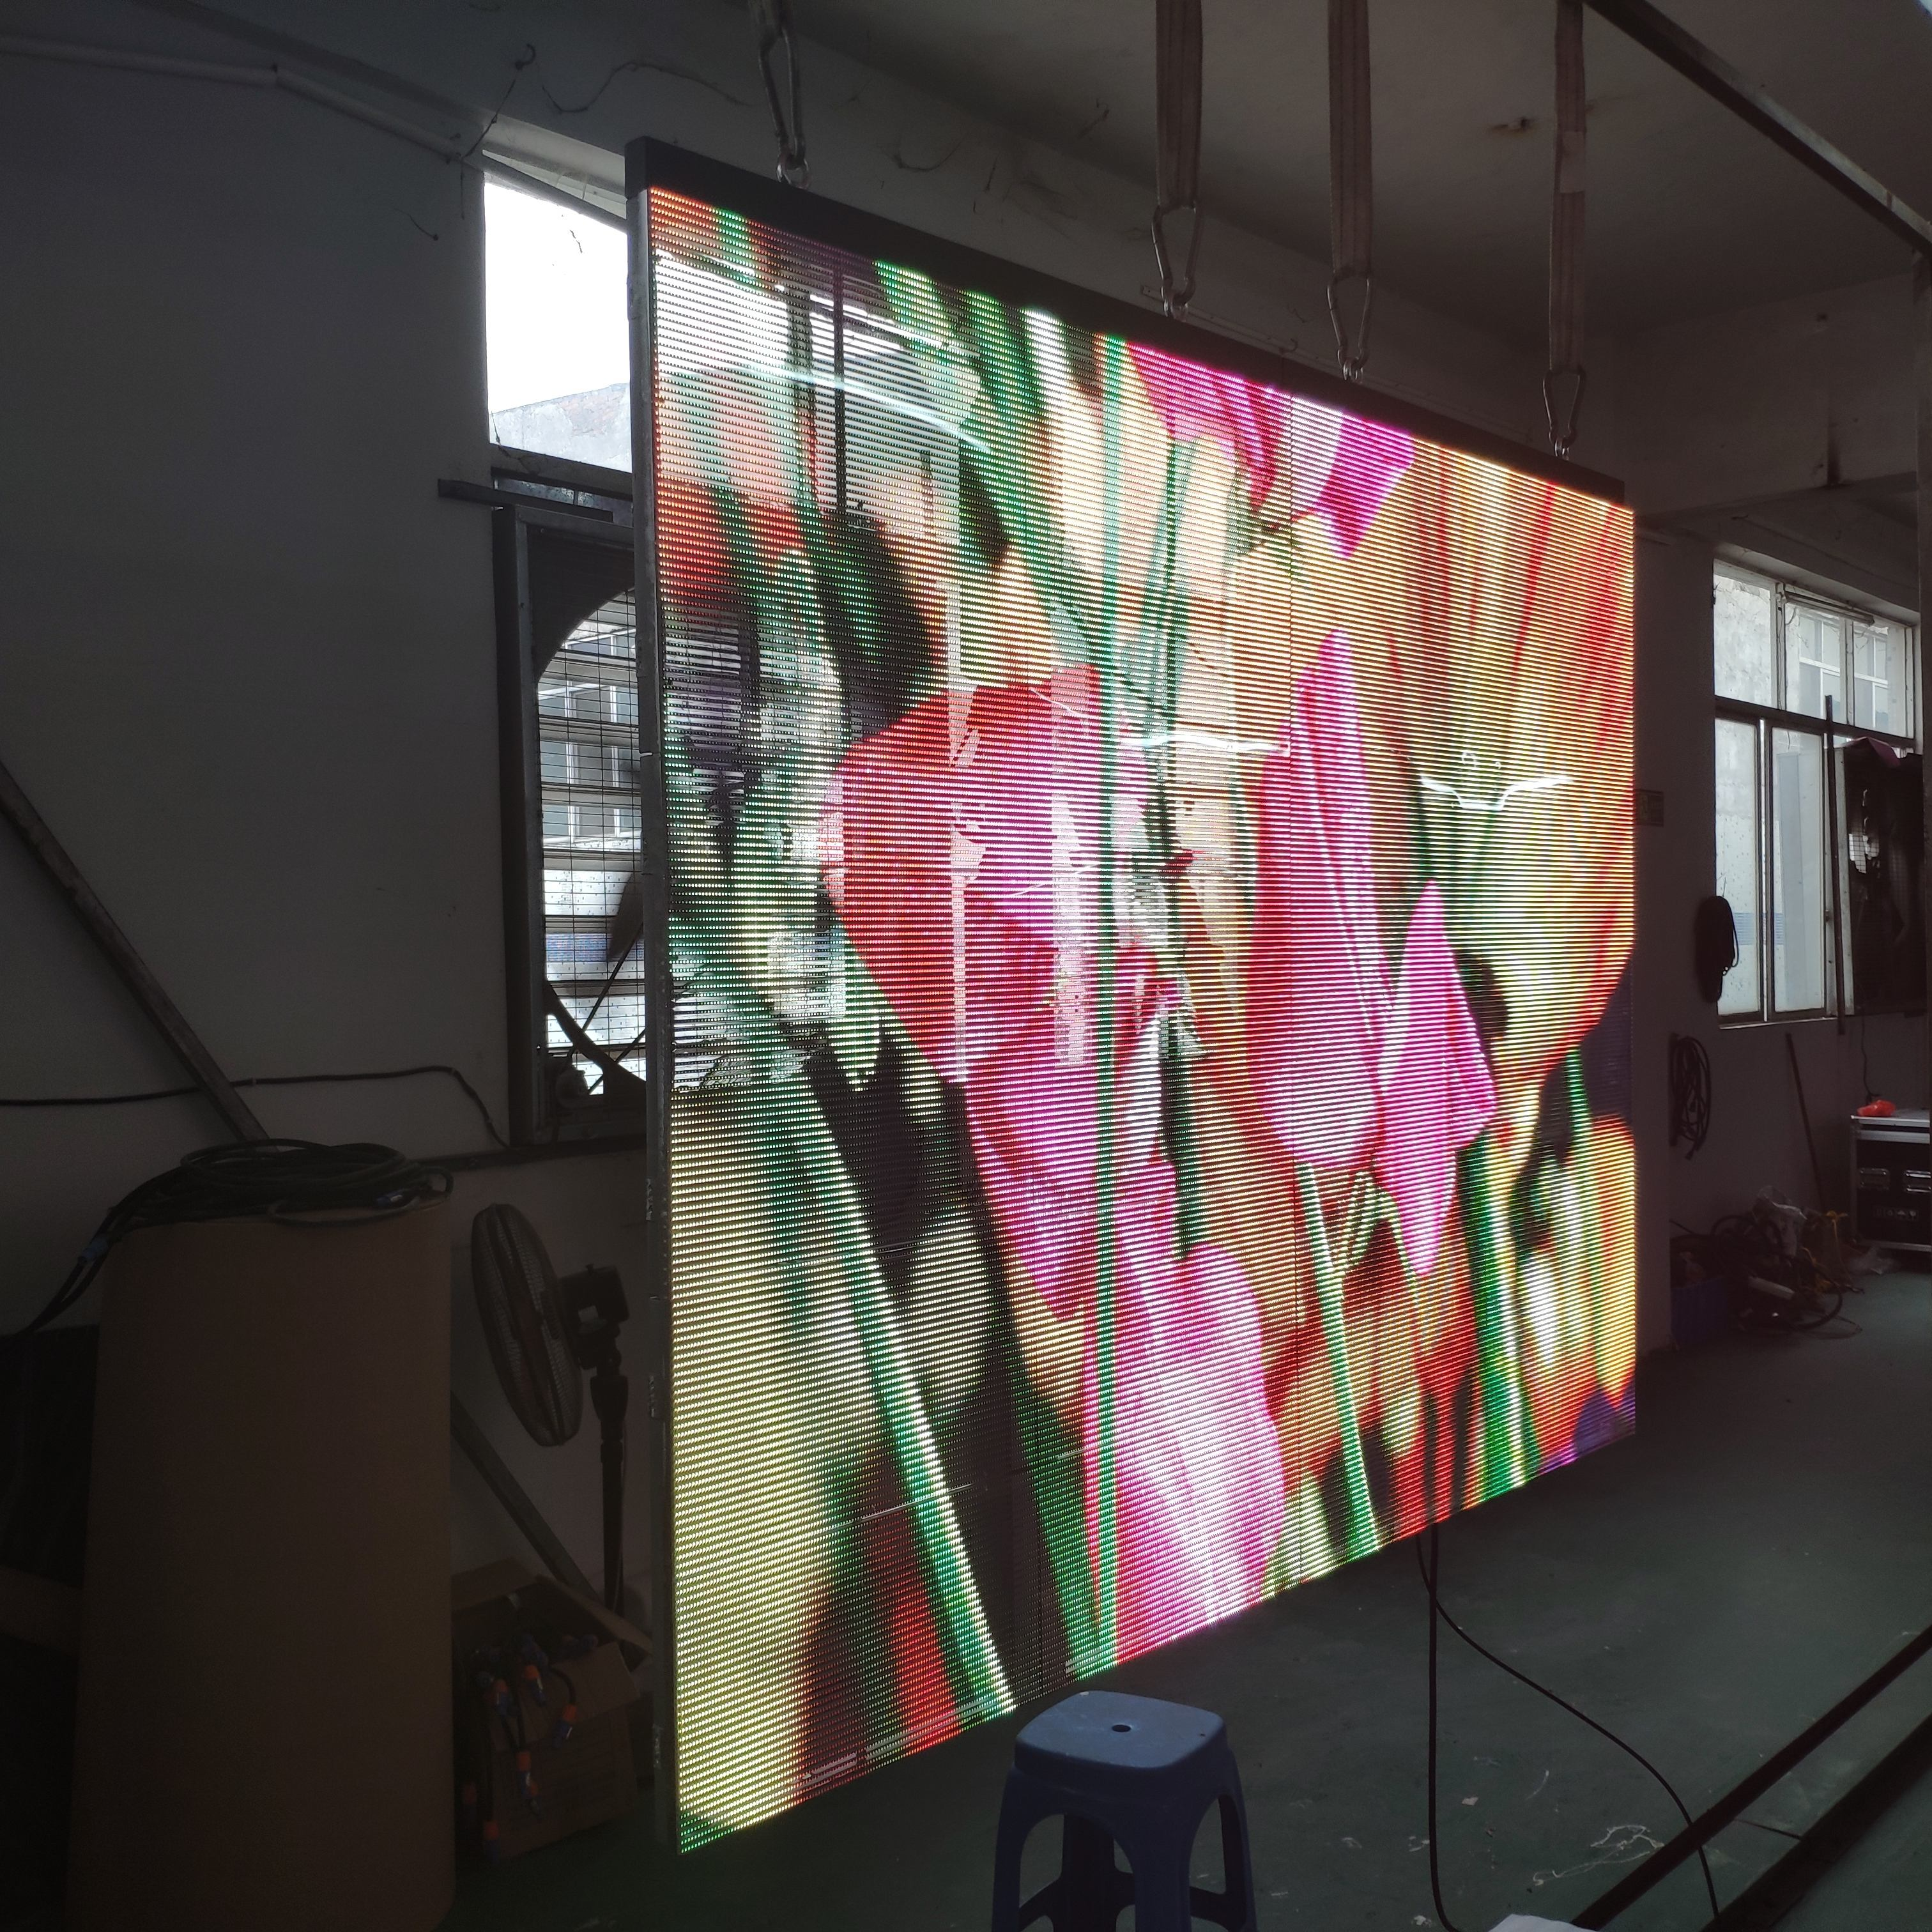 Led Screen Panels Indoor Display Transparent Led Screen 1000ミリメートル * 500ミリメートルP3.91 Advertising Panels Led TV Wall Billboard Cheap Price